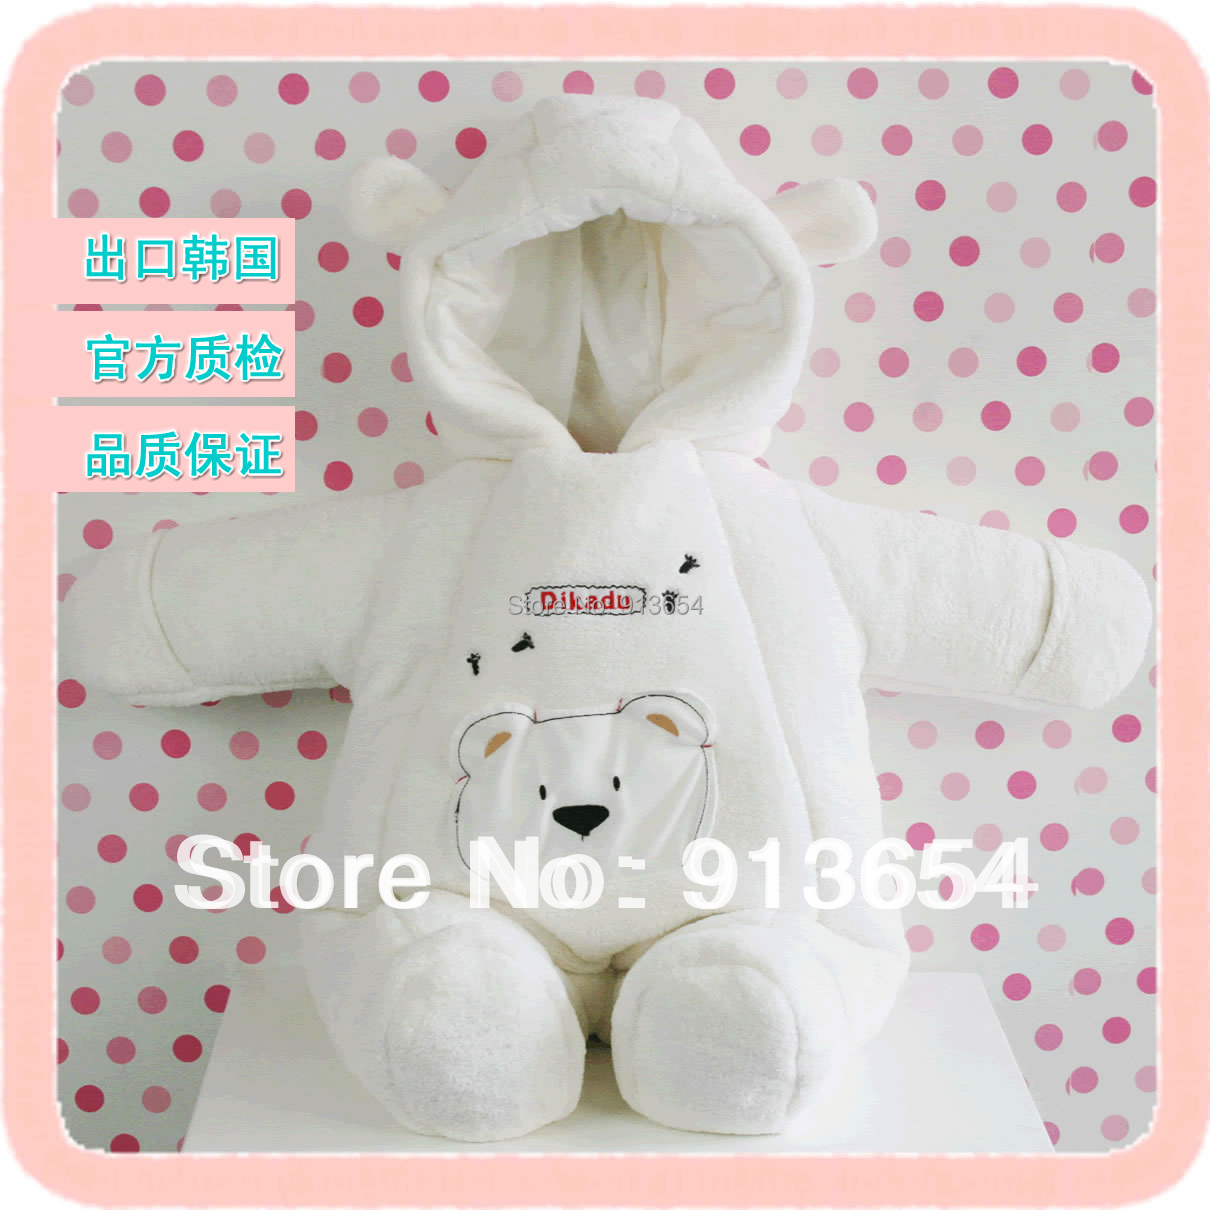 Free shipping new 2016 autumn winter overalls baby clothing newborn cotton romper kids cute warm overall baby jumpsuits<br>